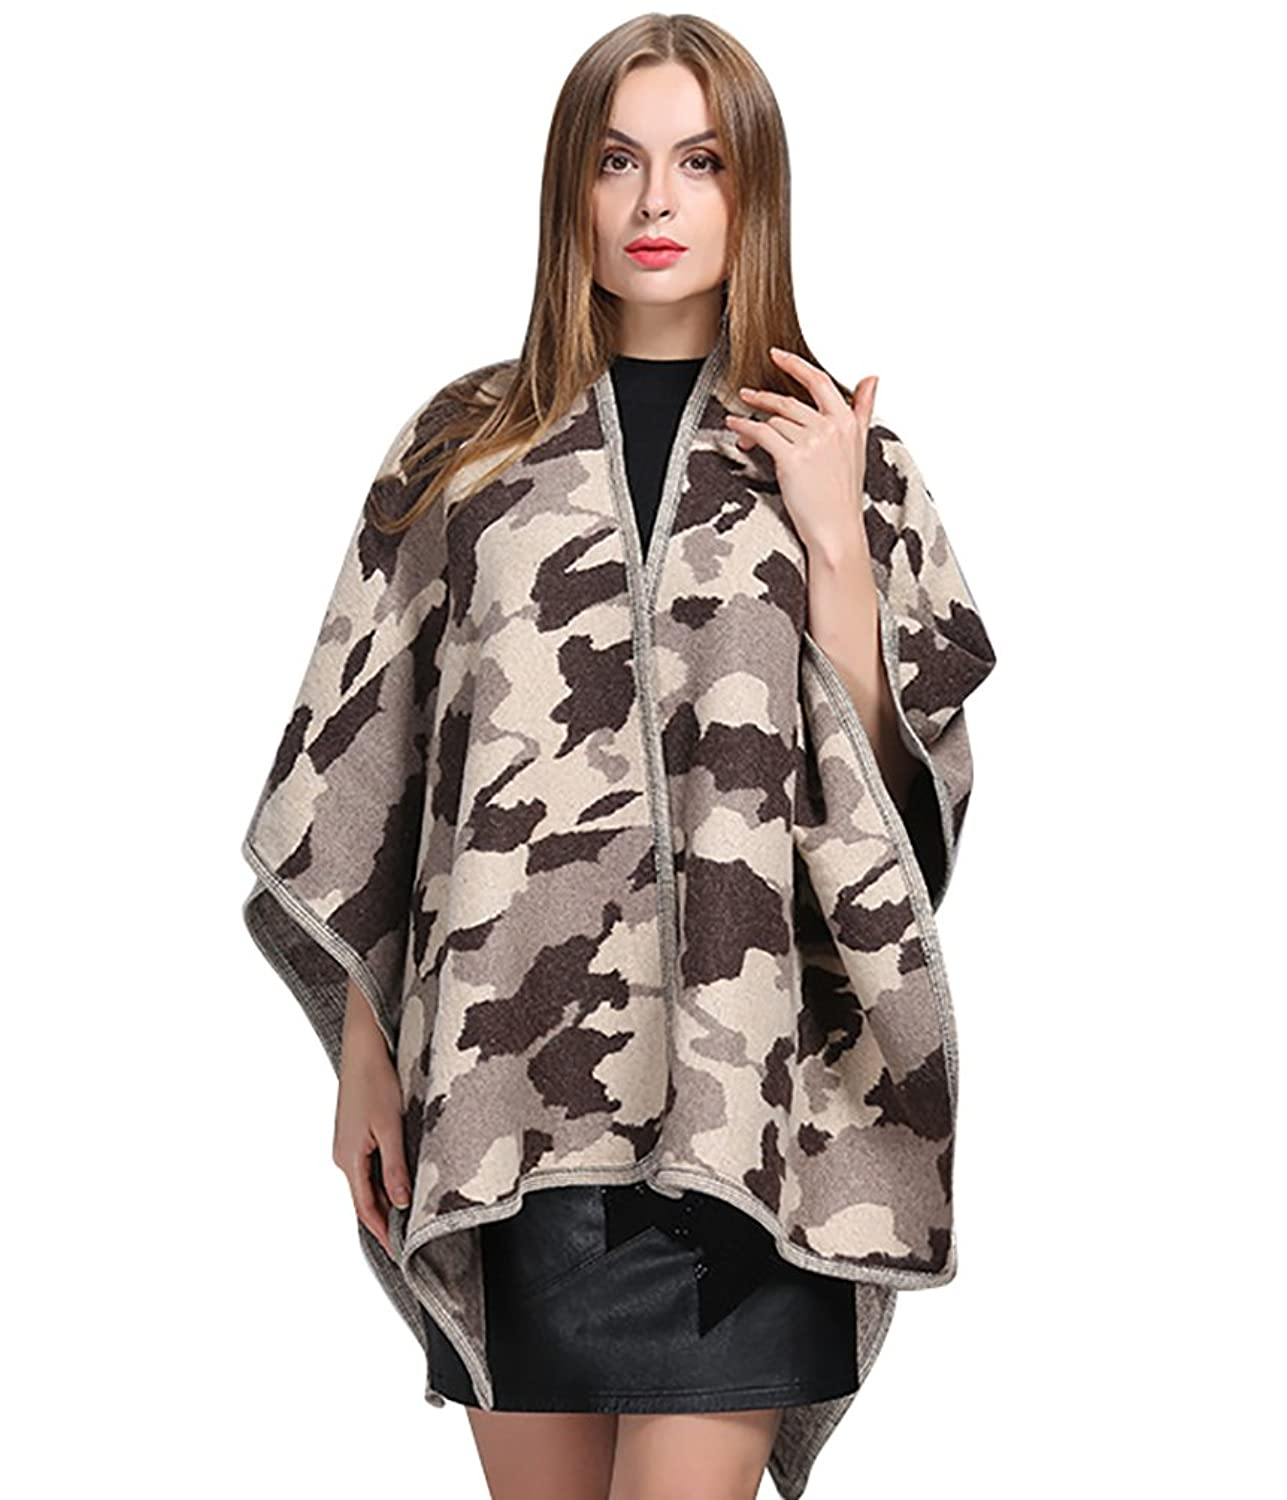 NiSeng Womens Camouflage Knitted Ponchos Oversized Winter Cardigan Sweaters